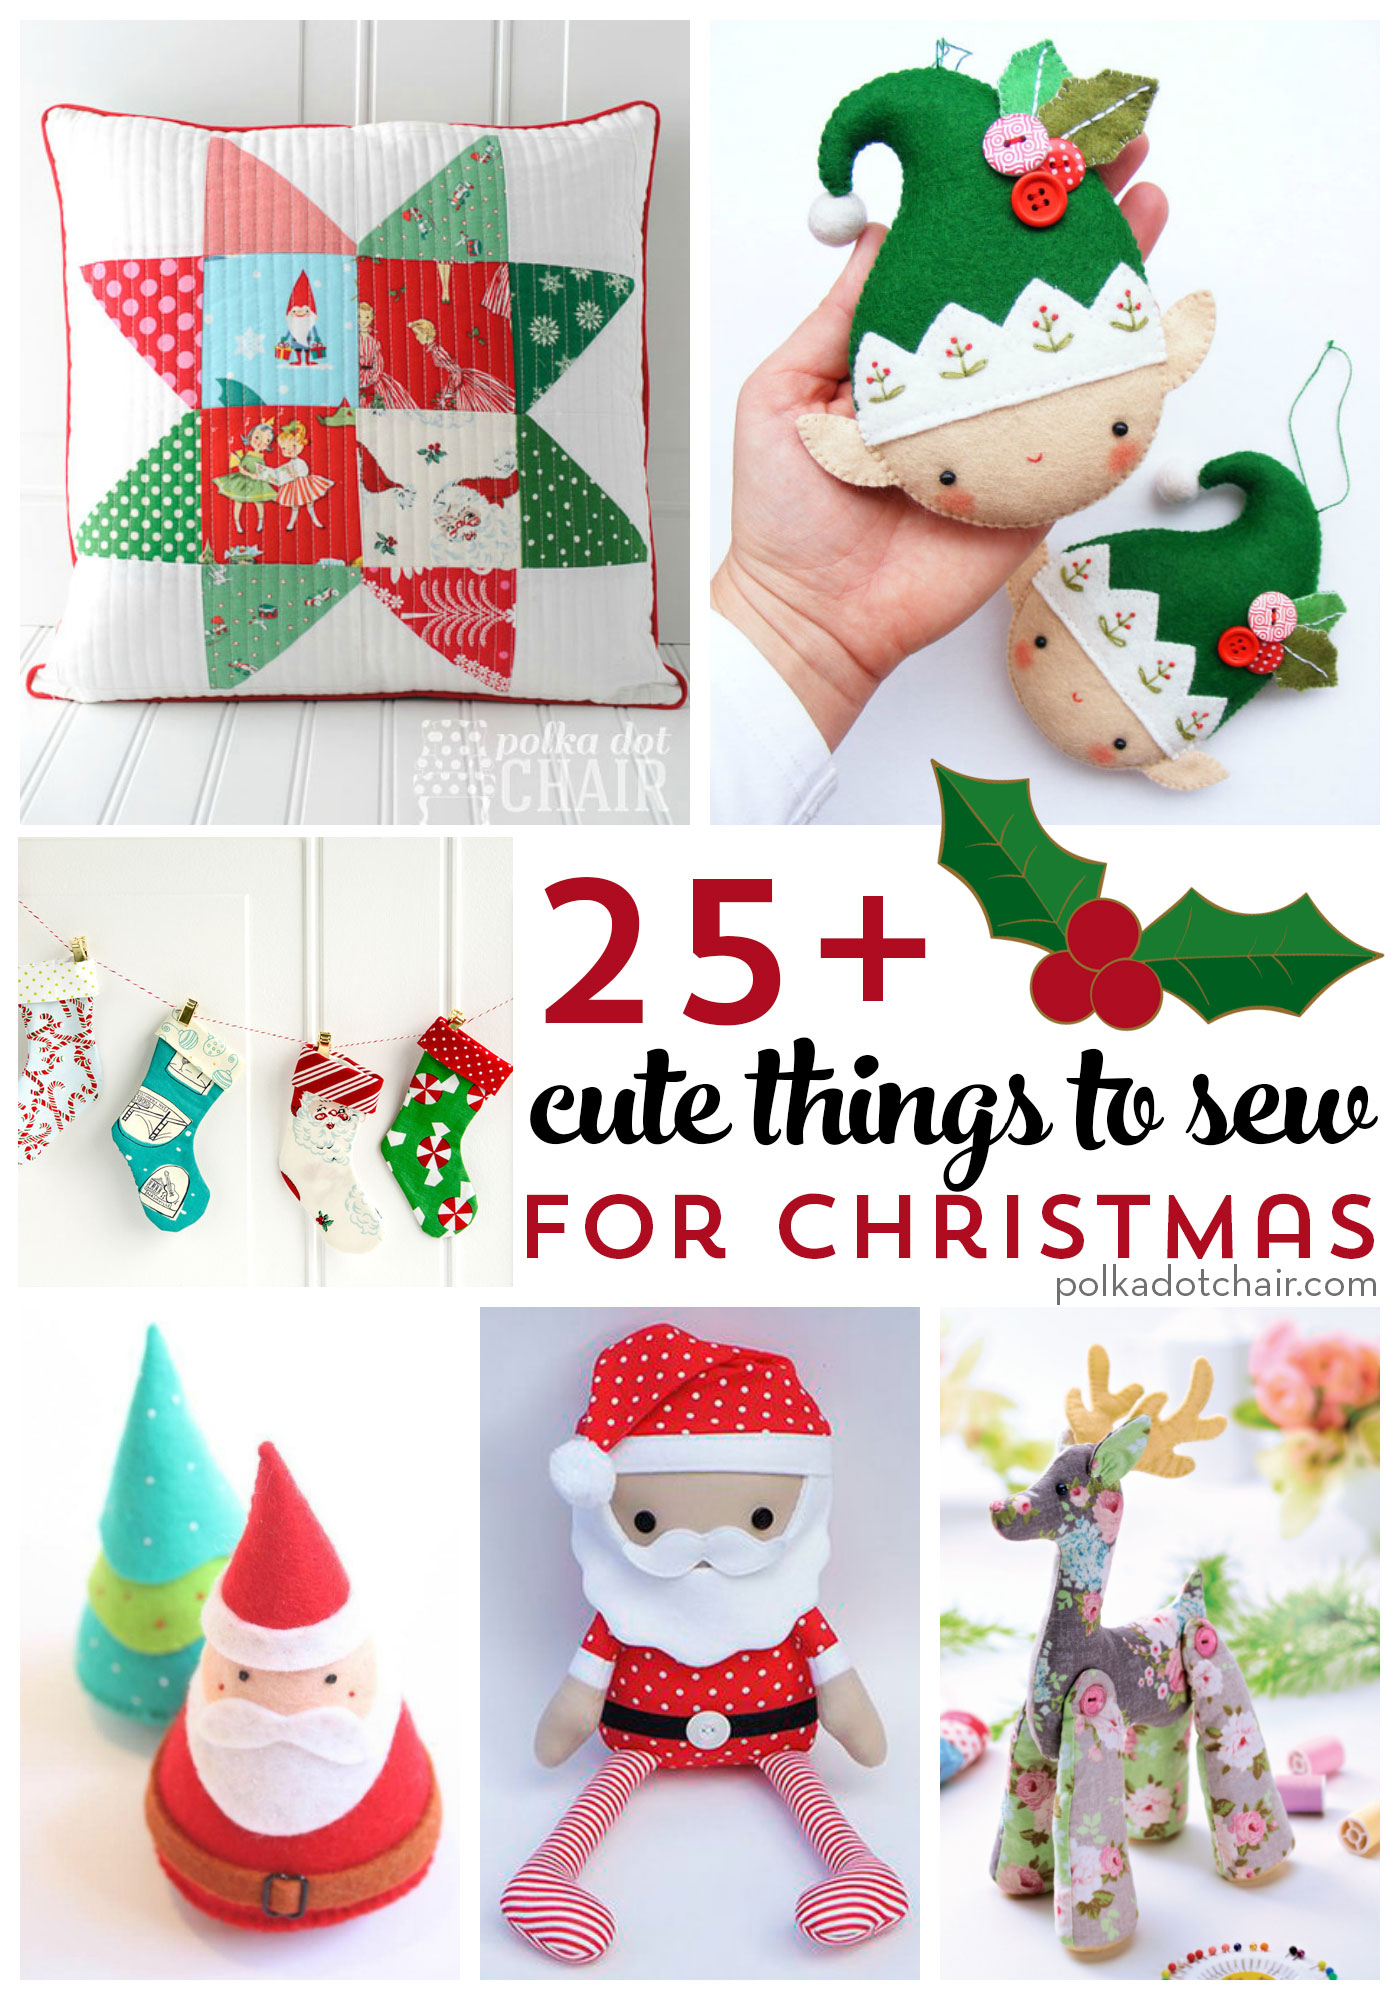 More than 25 Cute Things to Sew for Christmas - The Polka Dot Chair